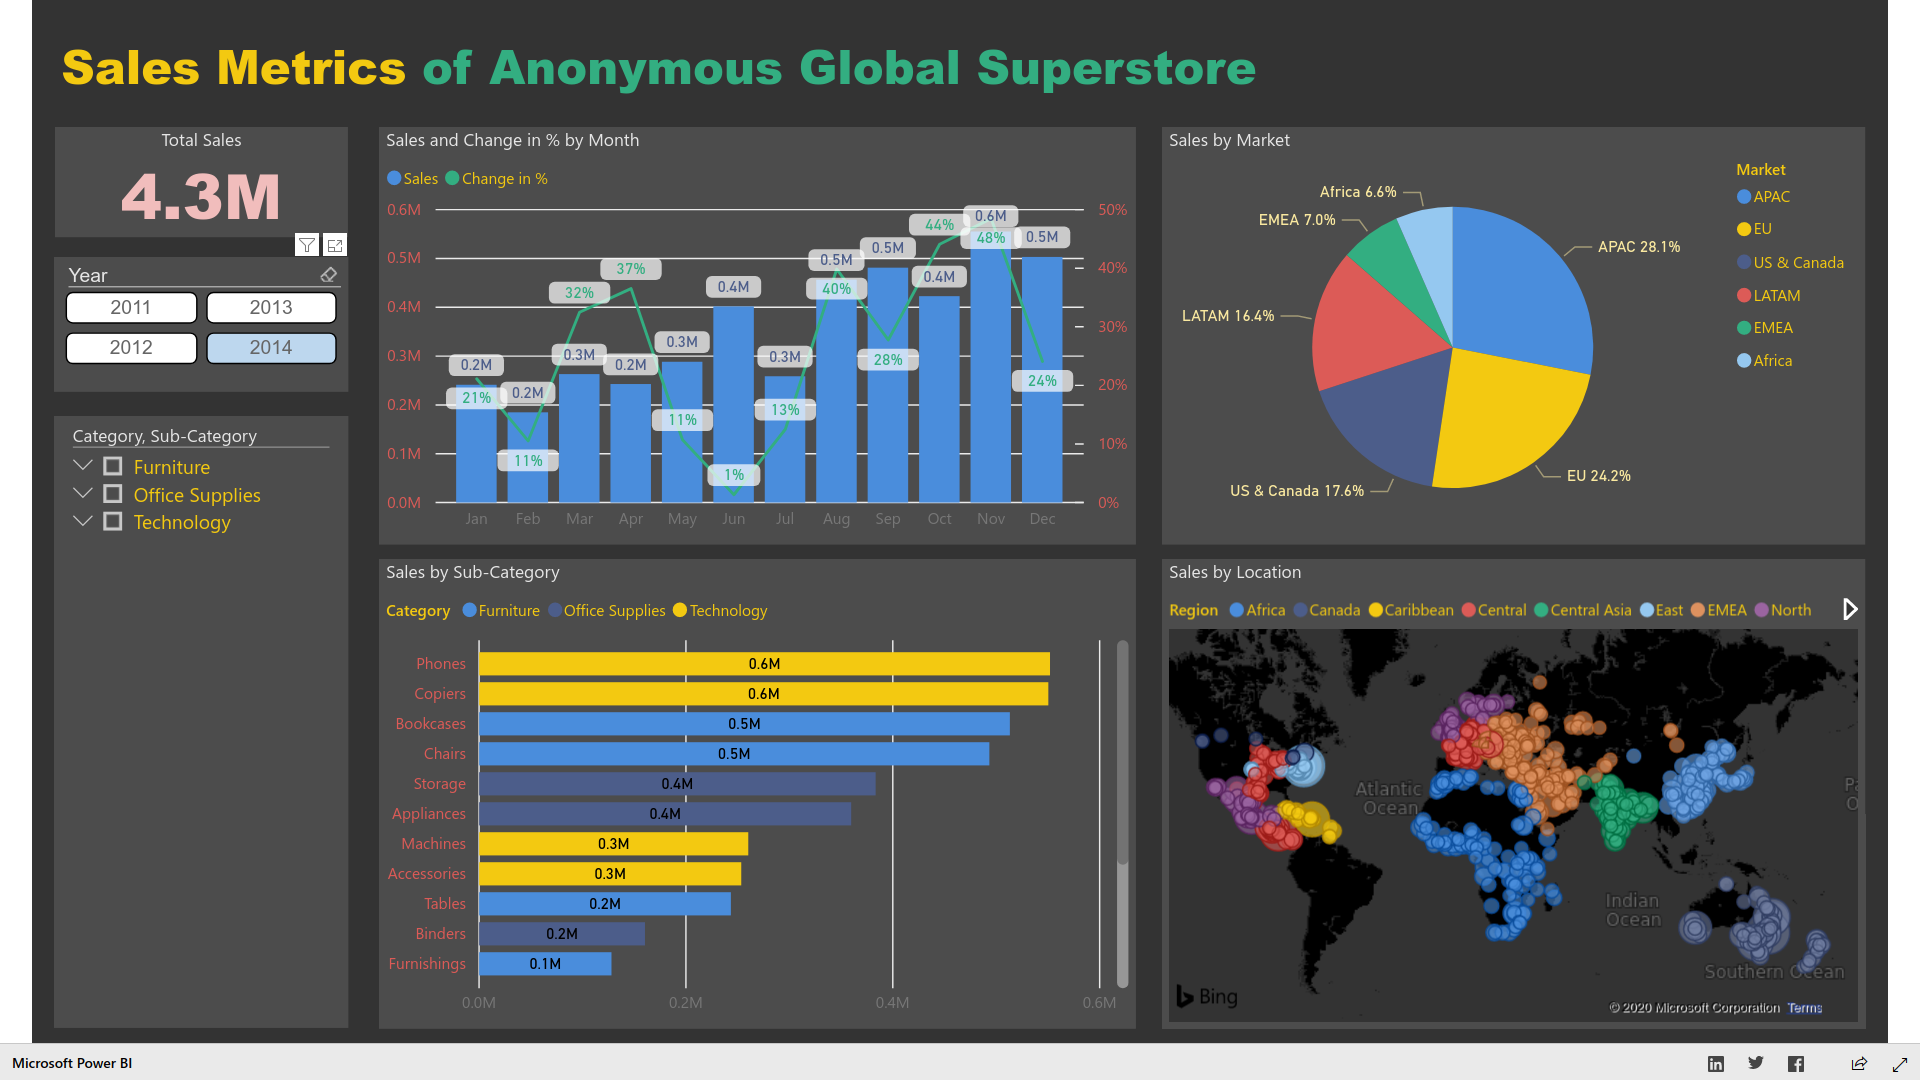 sales metrics of anonymous global superstore